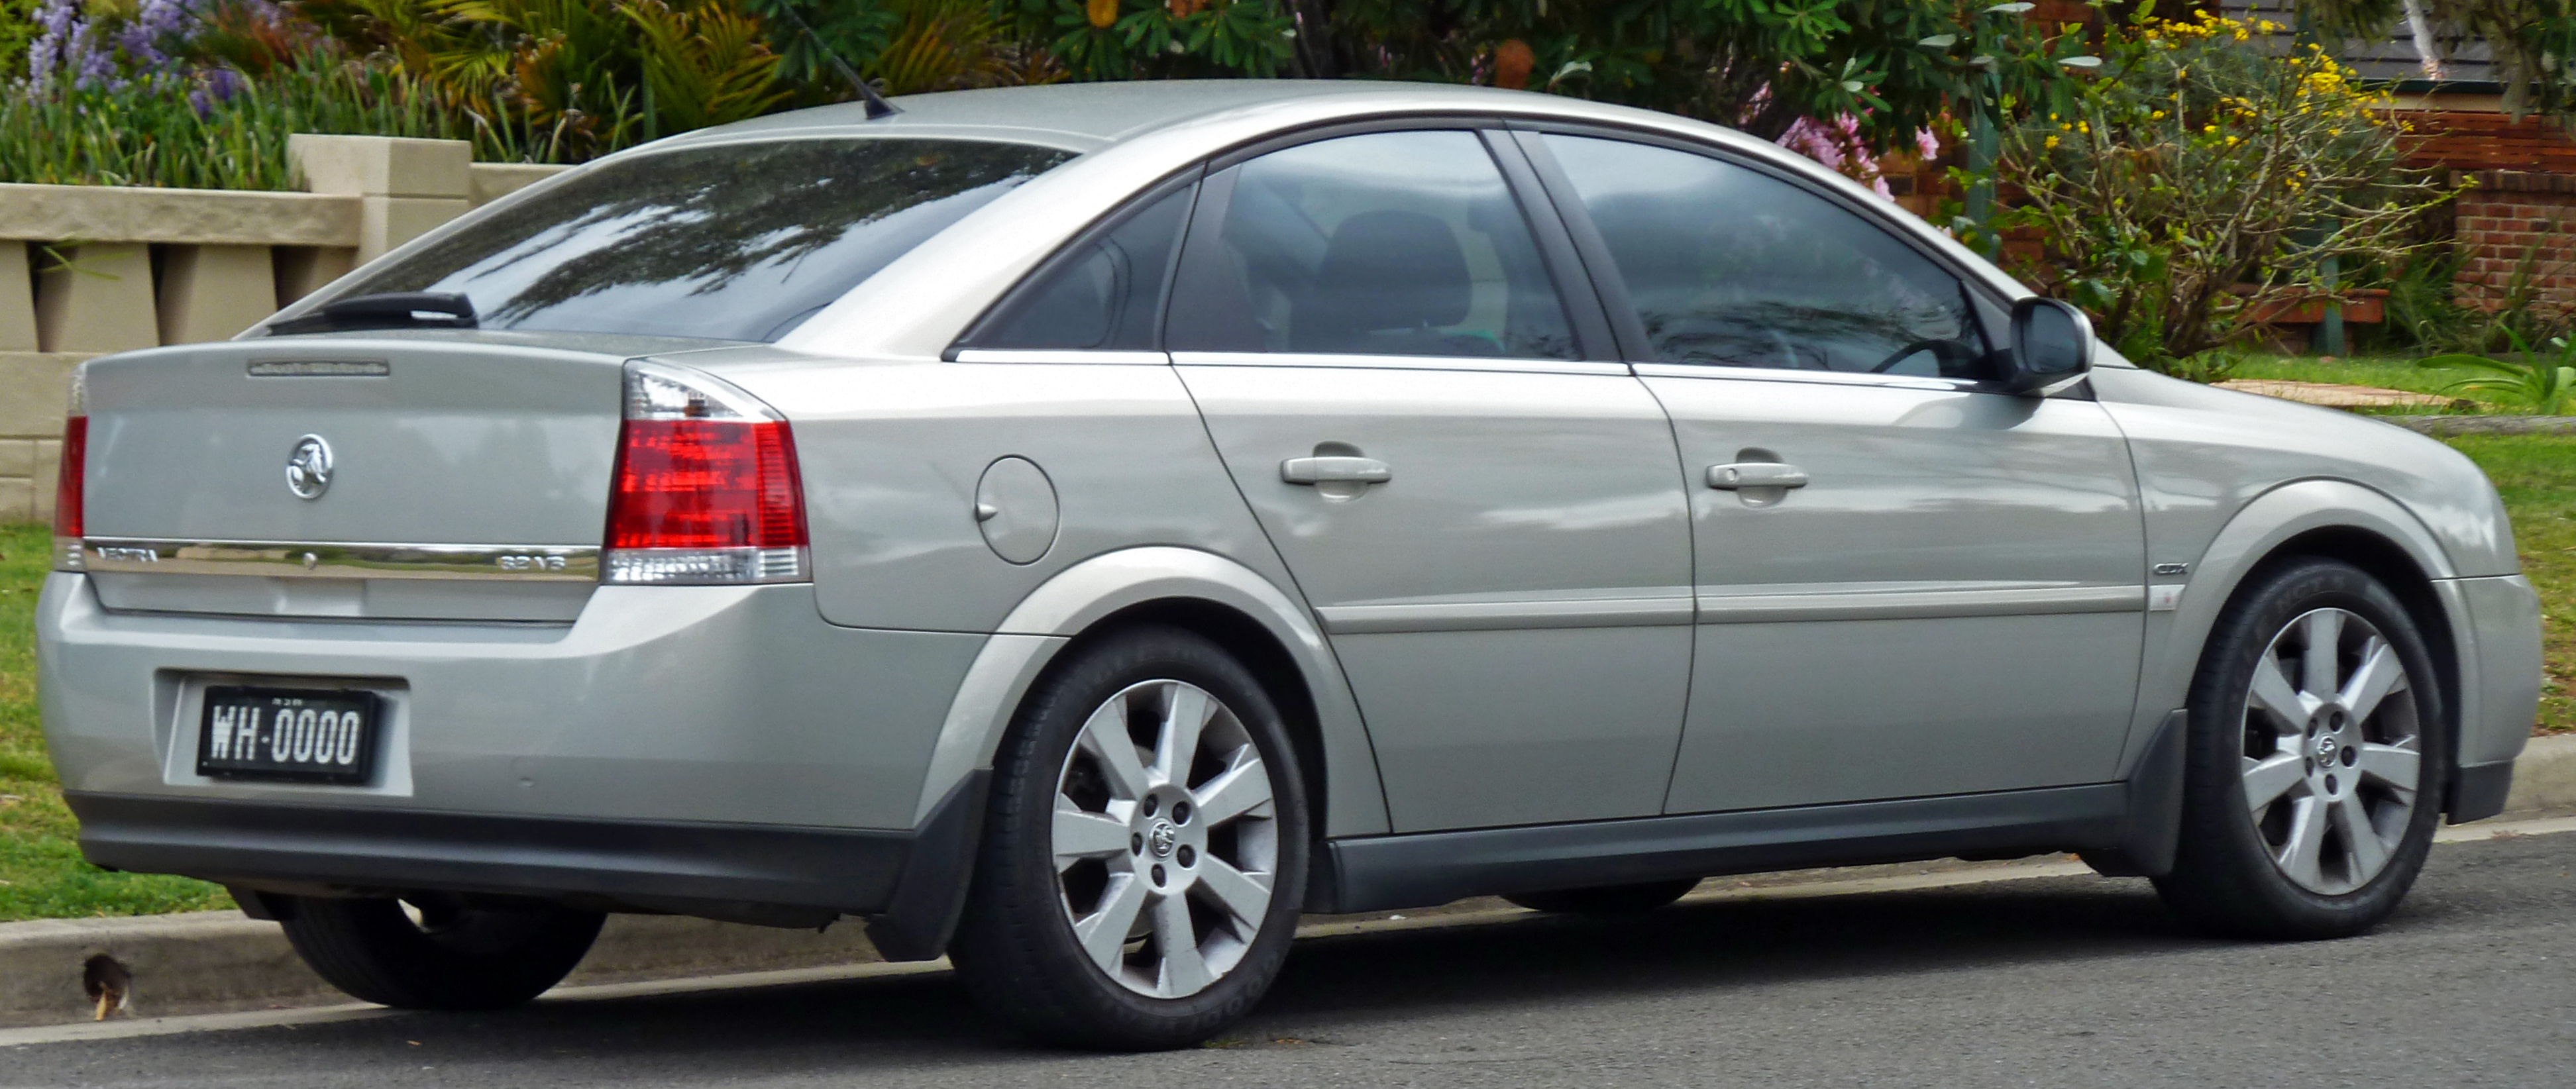 holden vectra (b) 2004 models